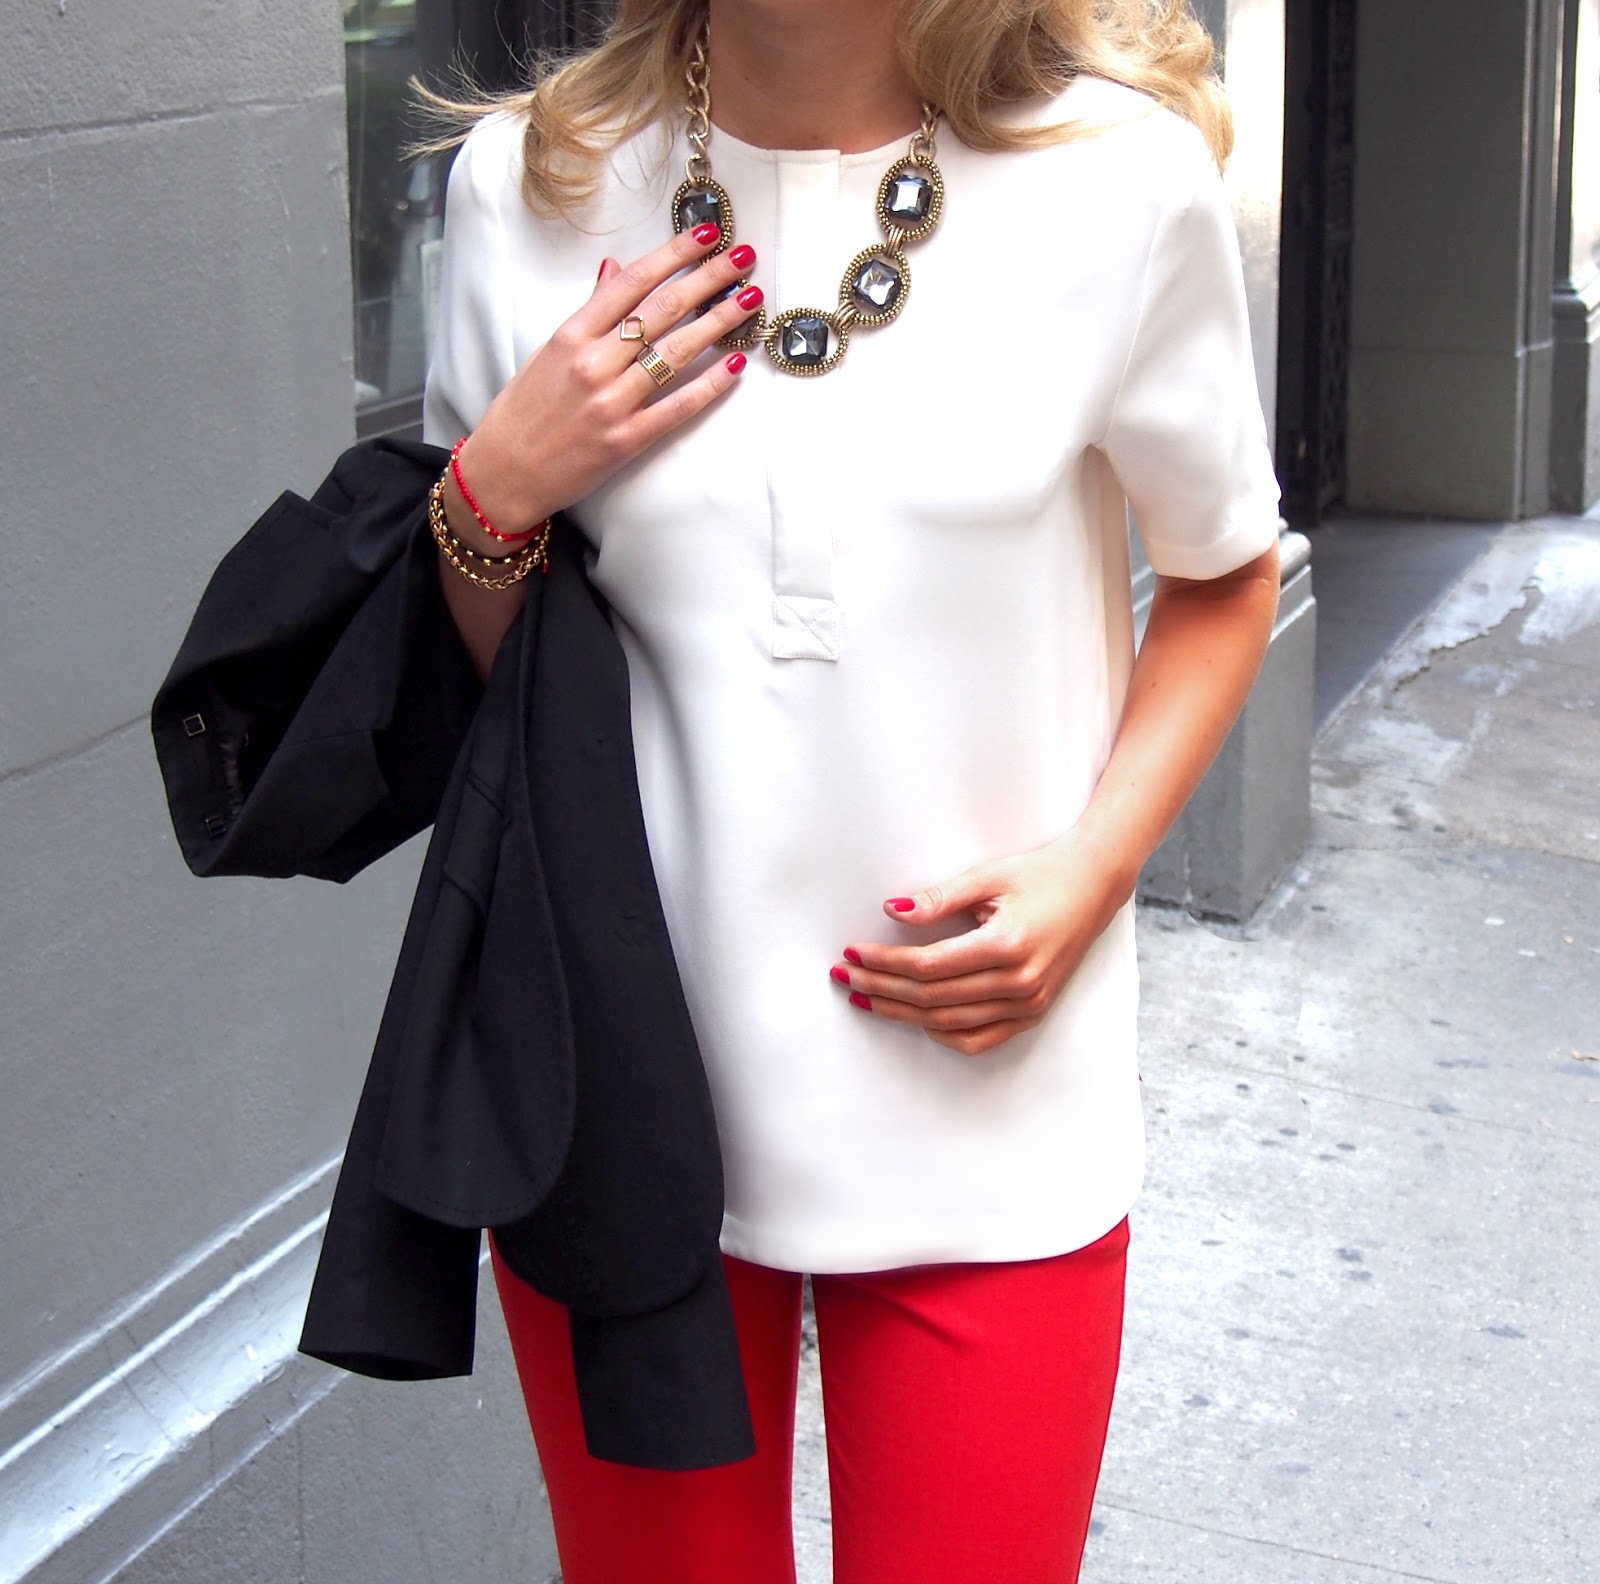 Unpredicted Fashion Outfits For Work Professional Attire Classy